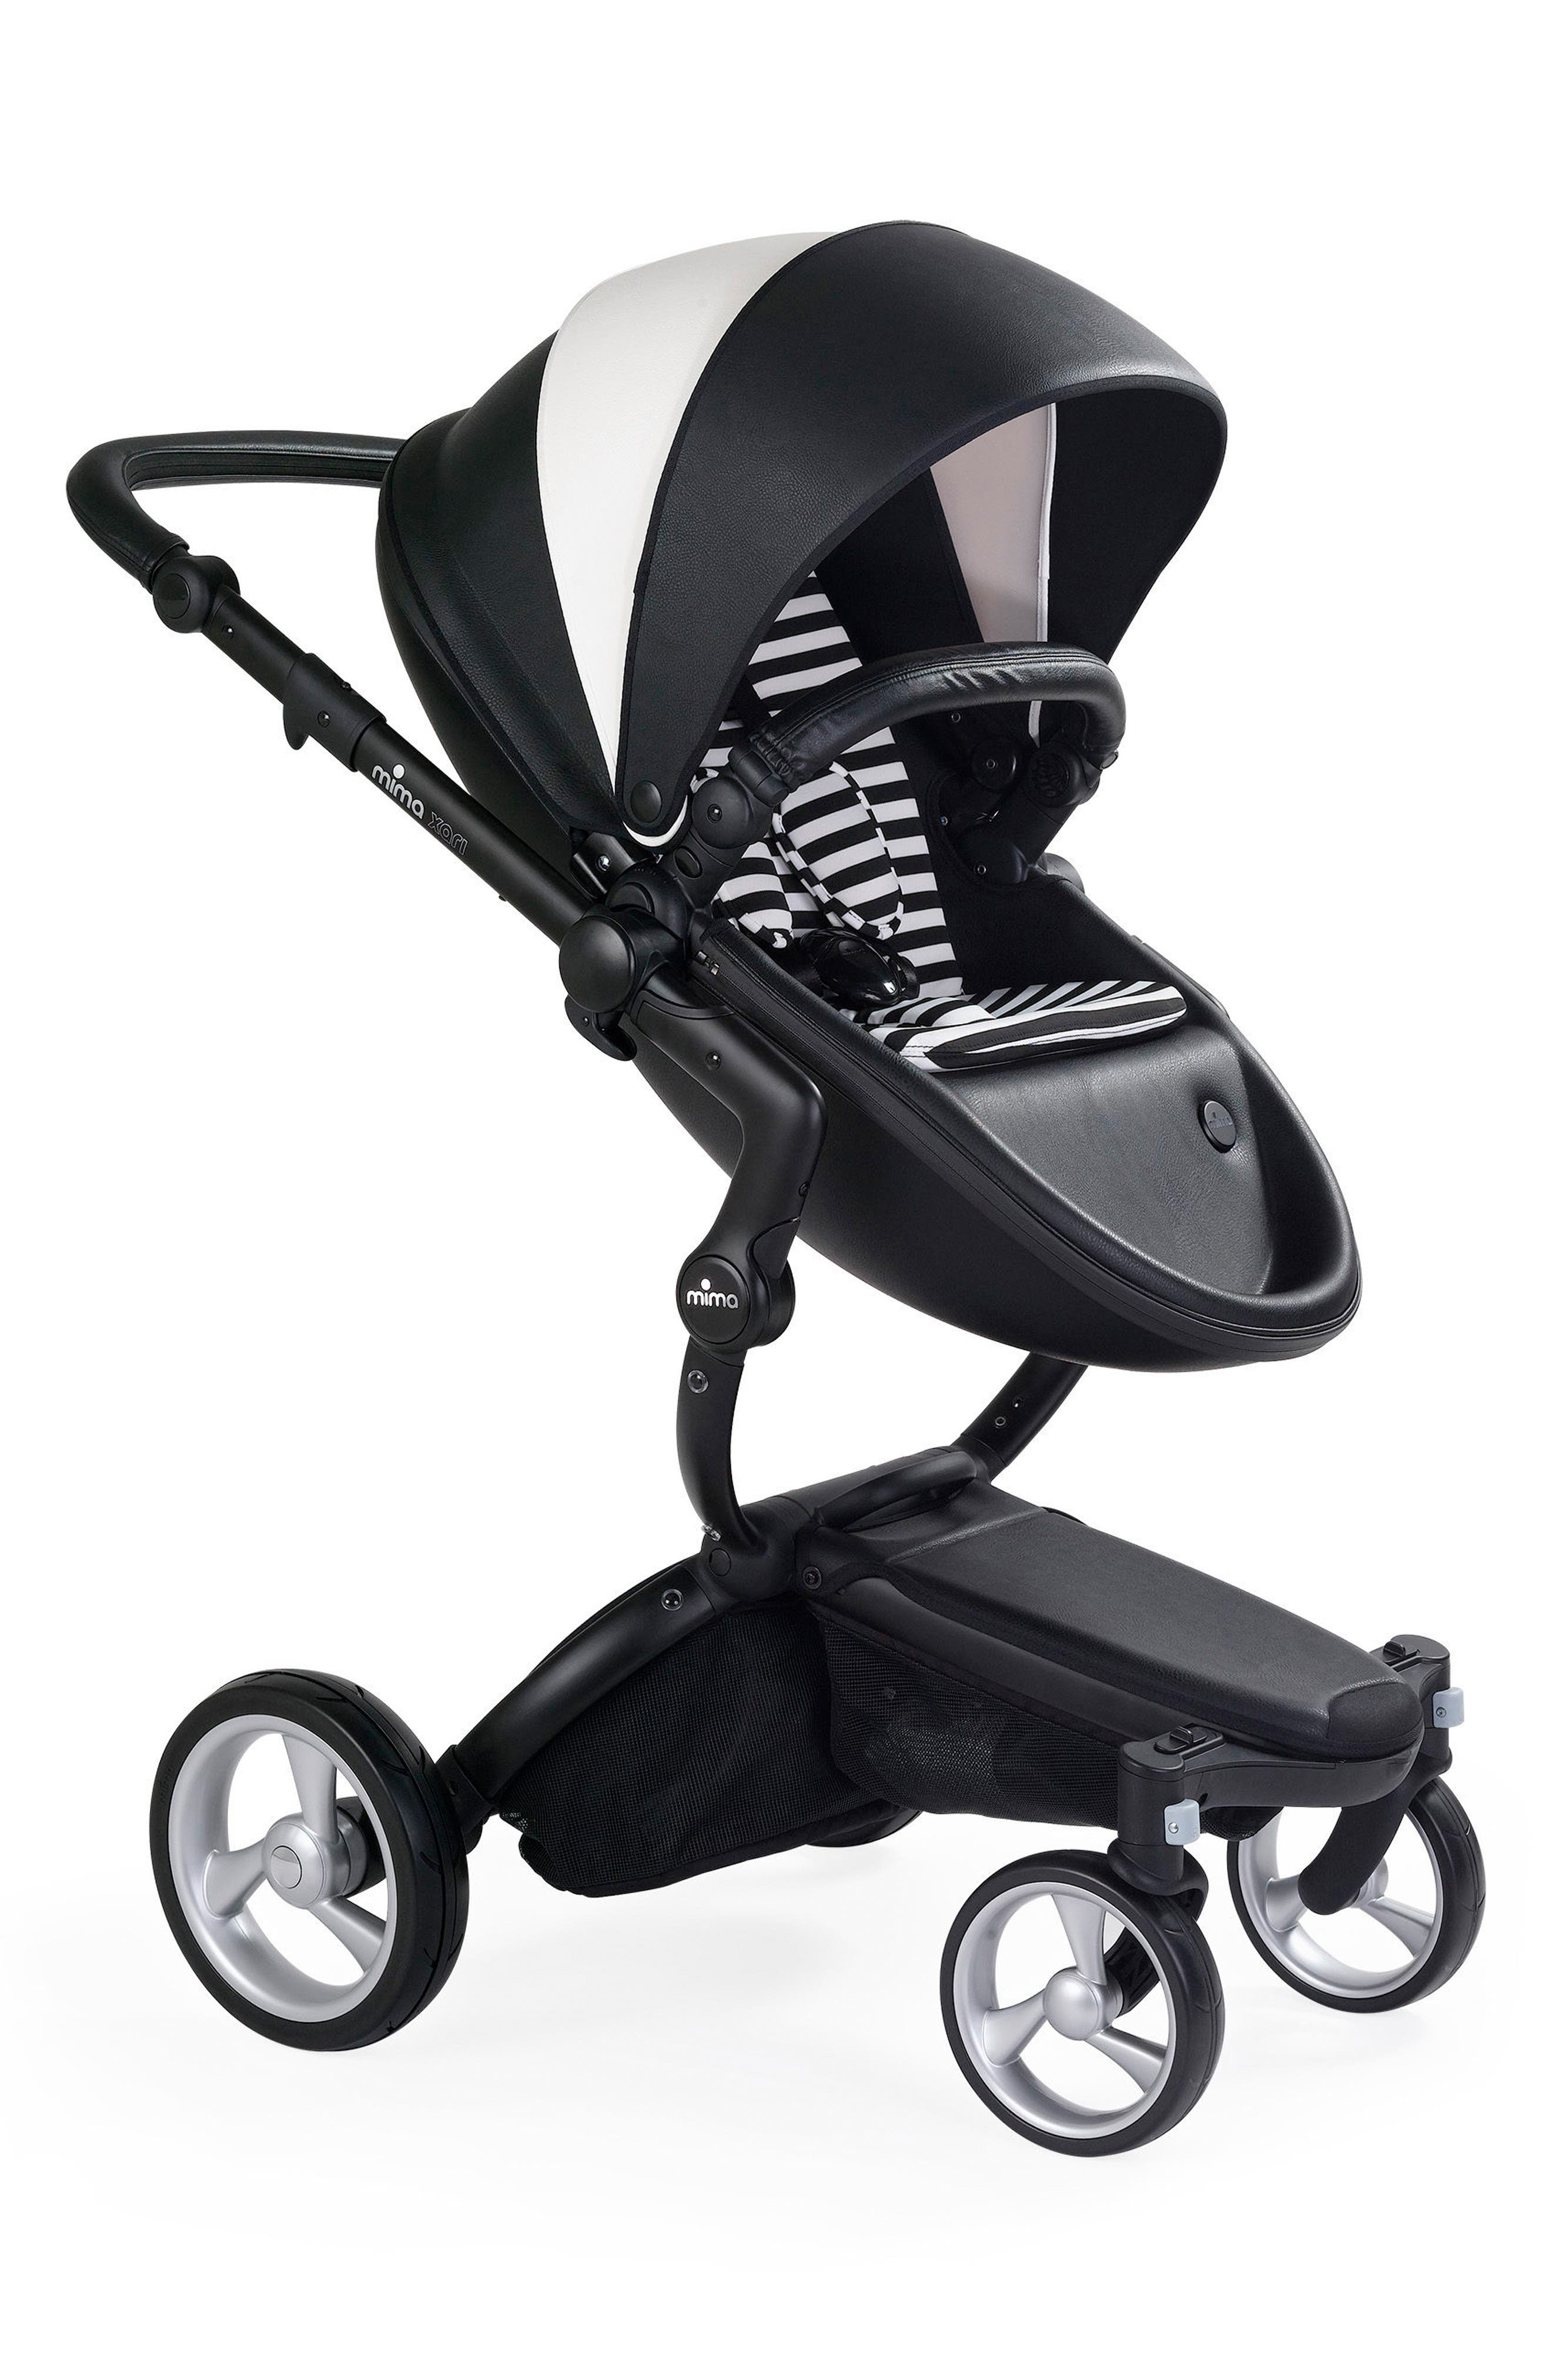 Xari Black Chassis Stroller with Reversible Reclining Seat & Carrycot,                         Main,                         color, Black White / Black White